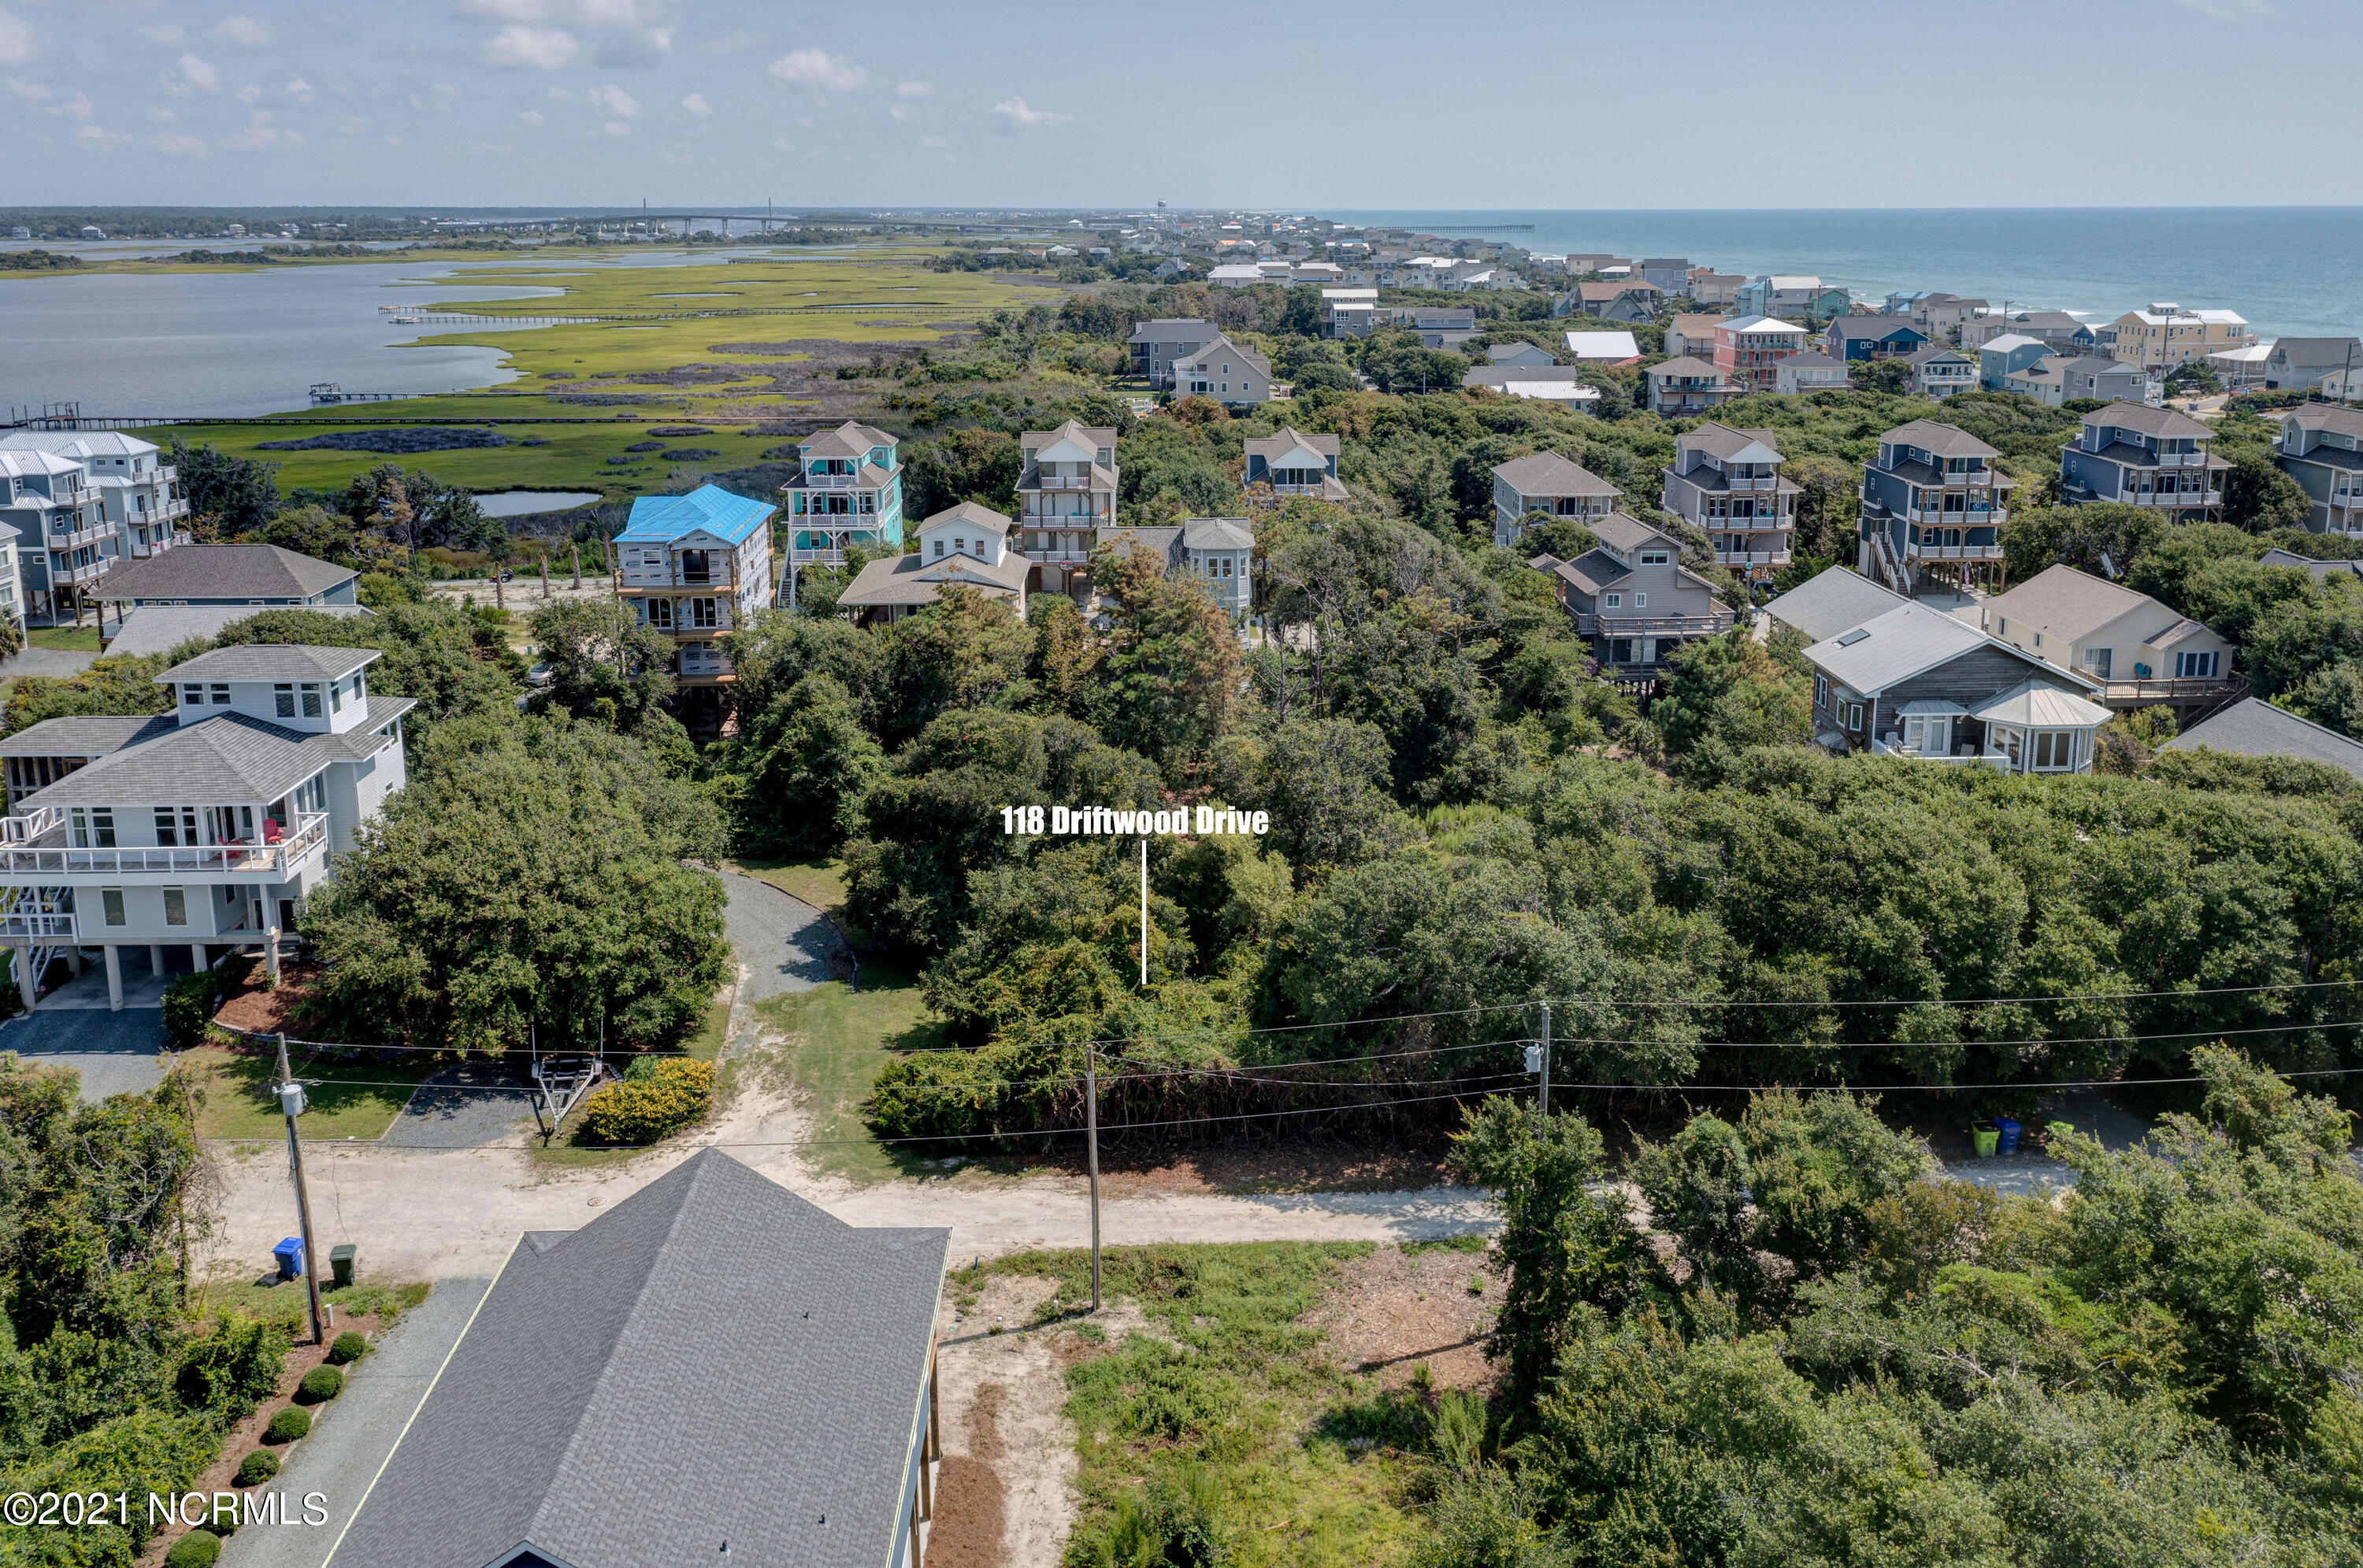 118 Driftwood Drive, Surf City, North Carolina 28445, ,Residential land,For sale,Driftwood,100285679